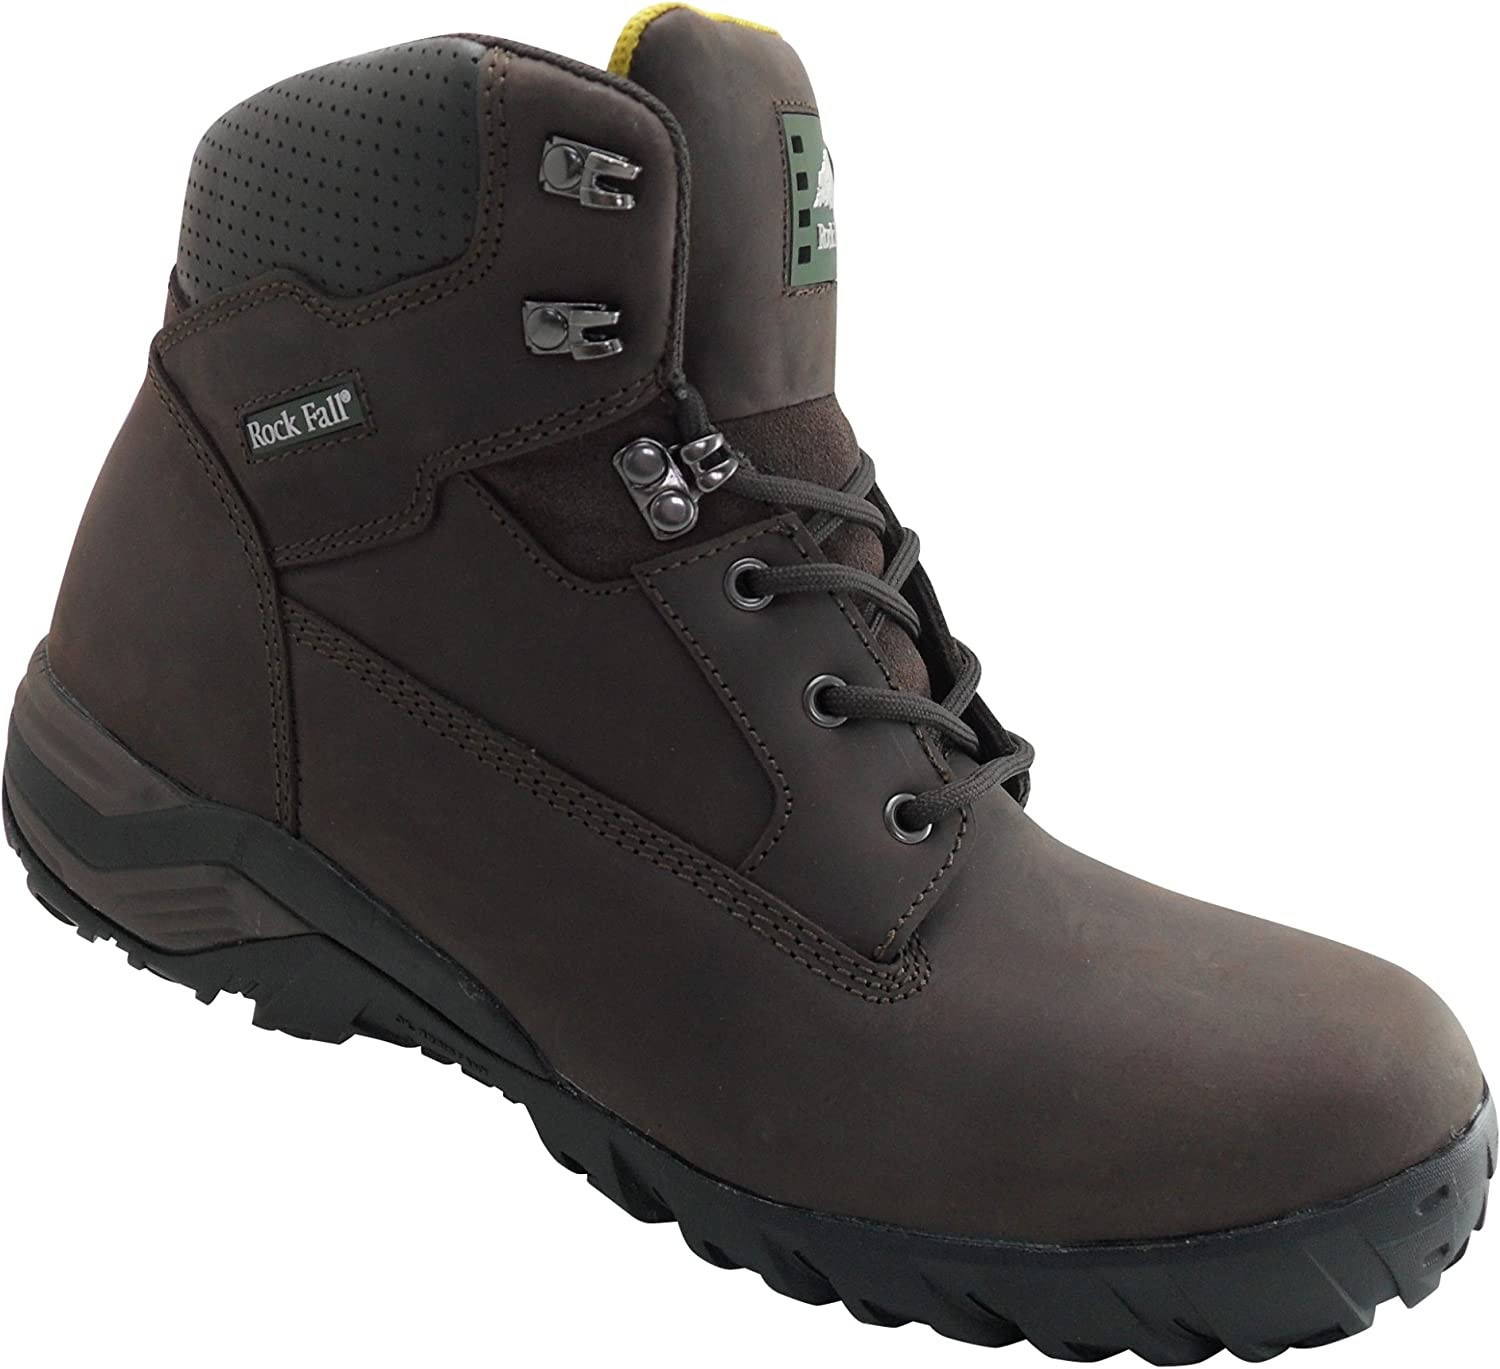 Rock Fall Flint Premium Brown Leather Metal Free Composite Toe Safety Boots - RF440B